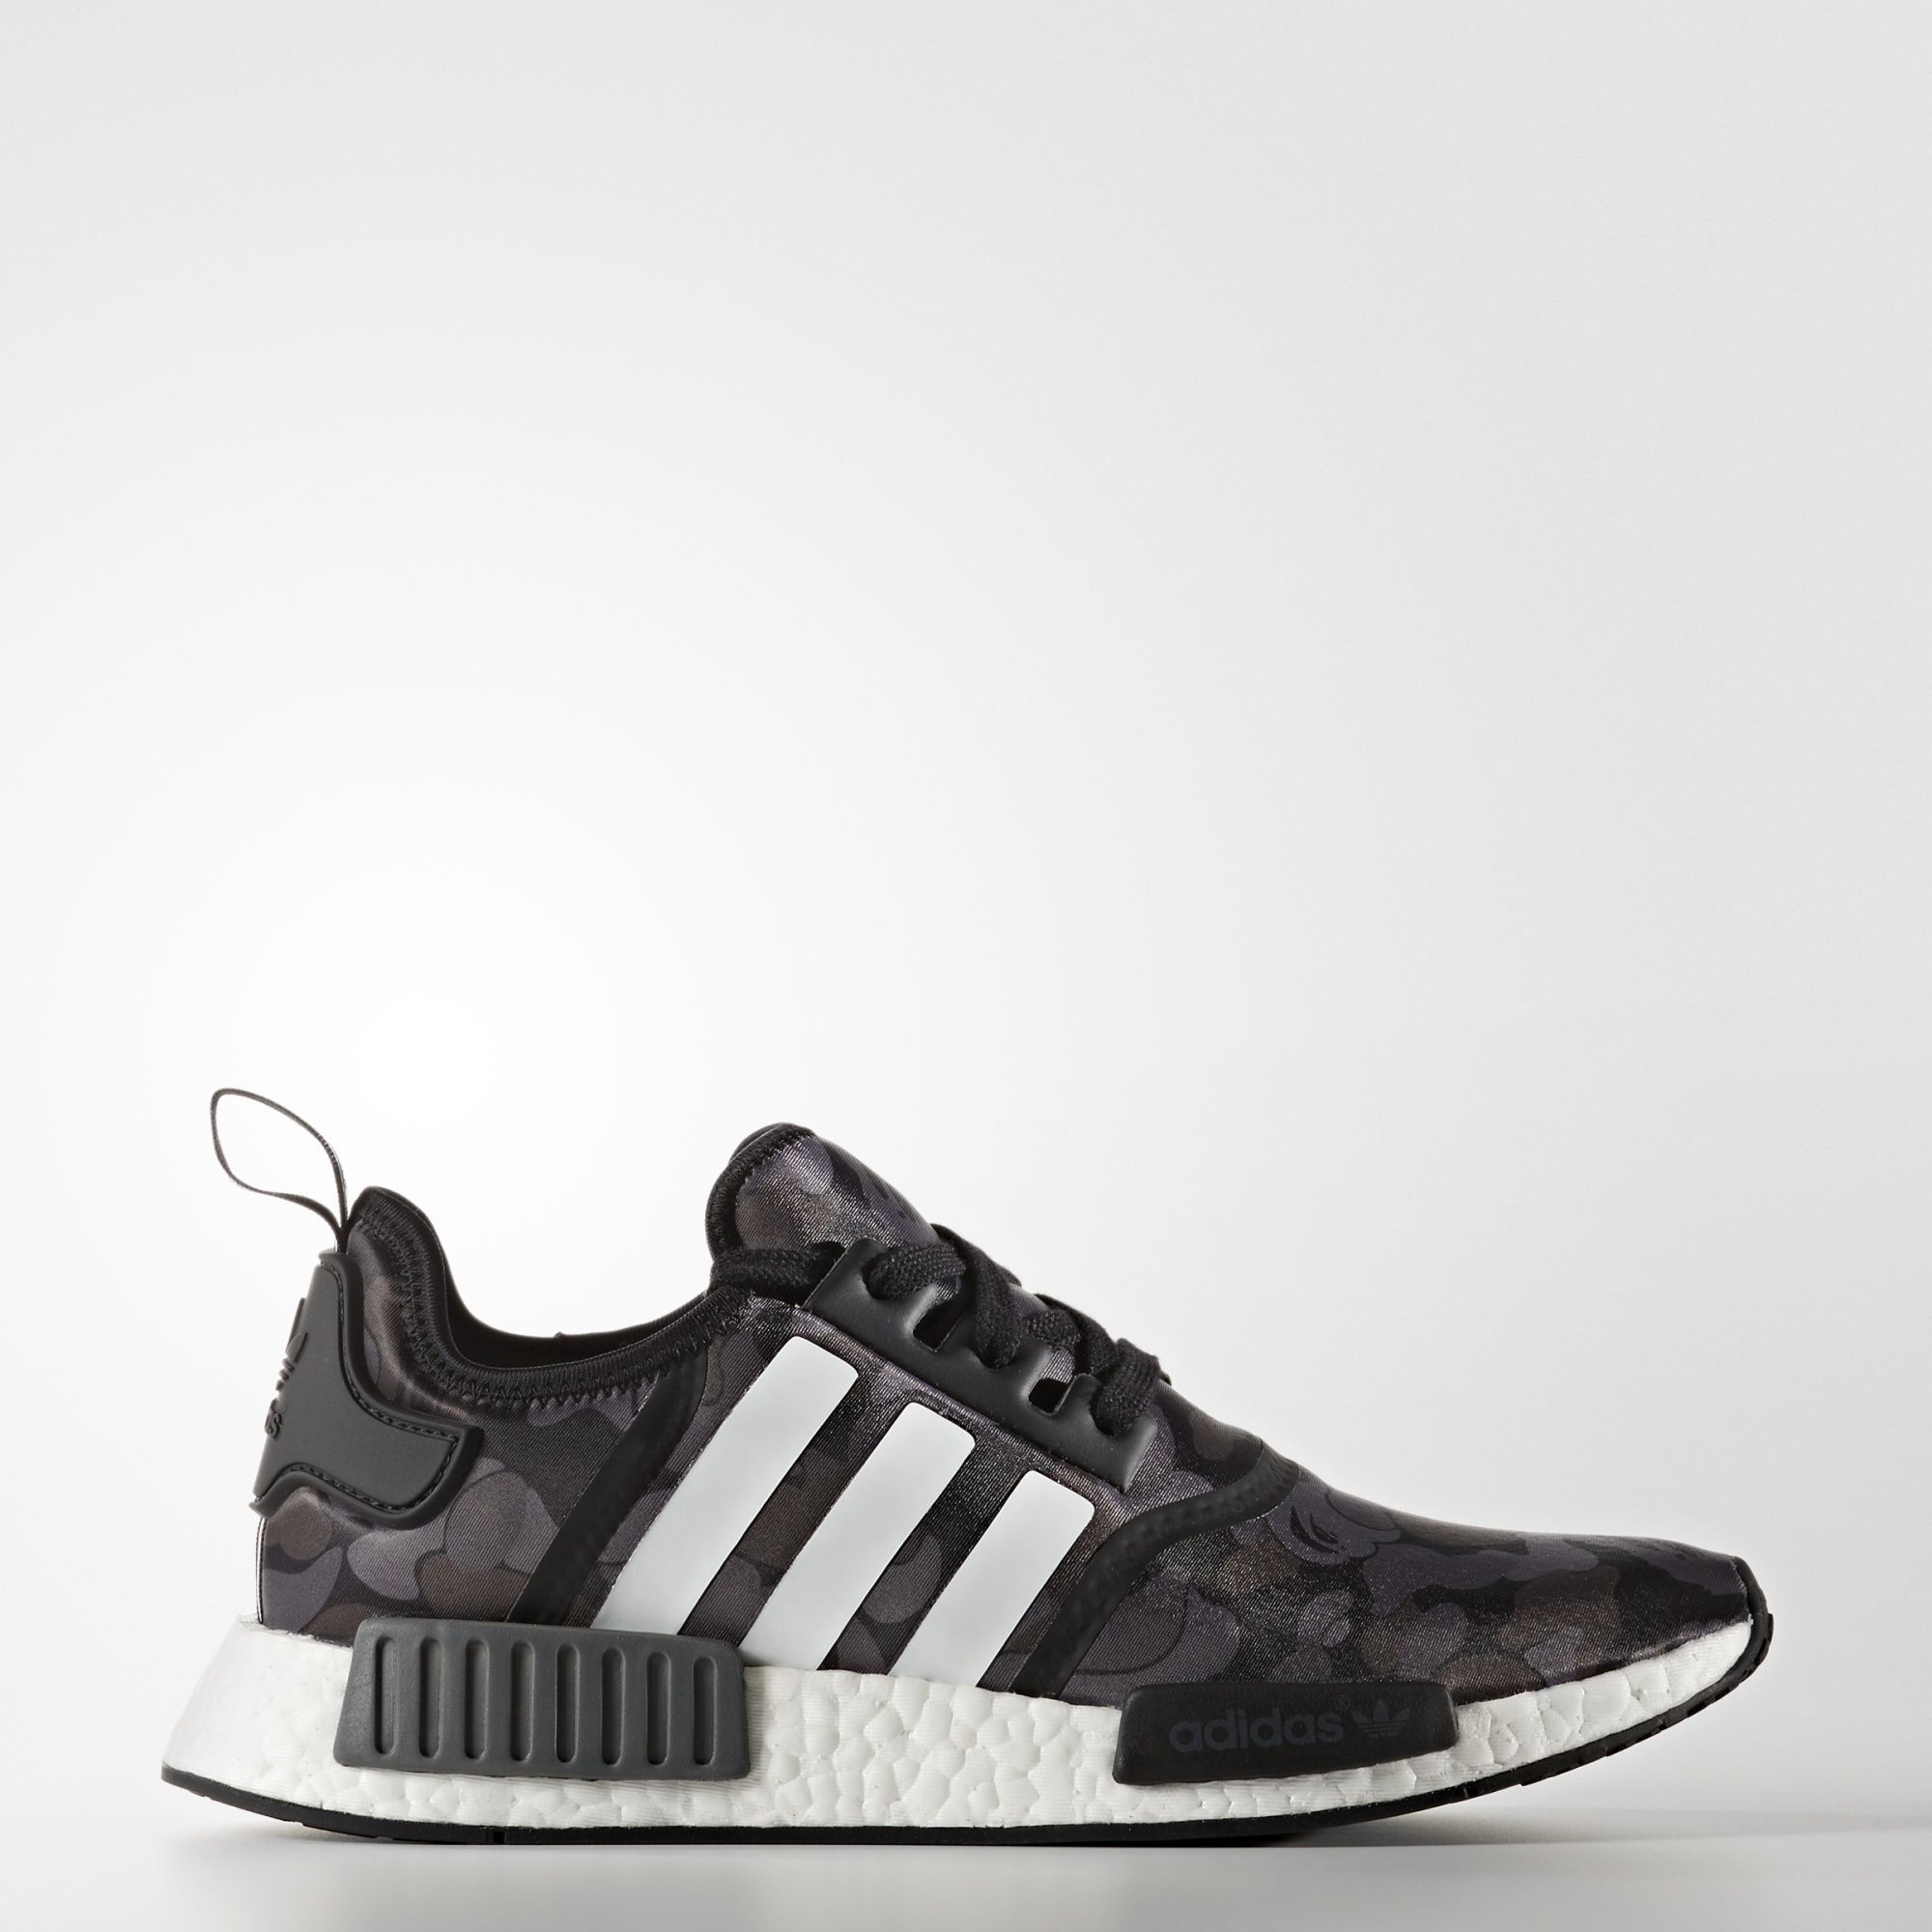 online retailer 2e7e2 3f0bd Tênis Nmd R1 Bape | ;Style is a way to say who you are ...